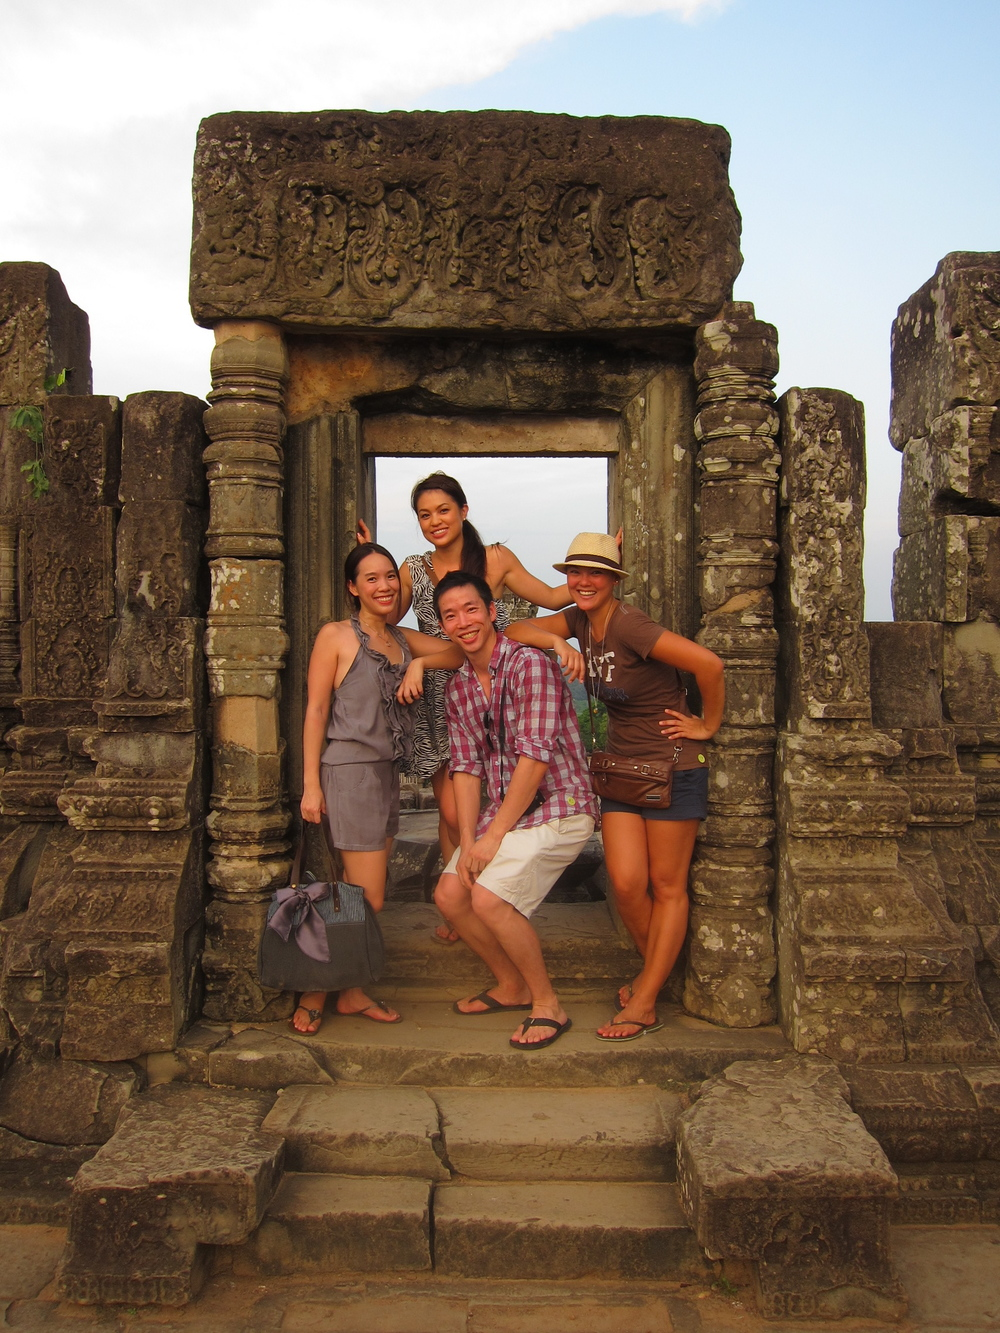 Natasha: One of the things I like about Singapore is being able to explore nearby countries. Here we are at Siem Reap.